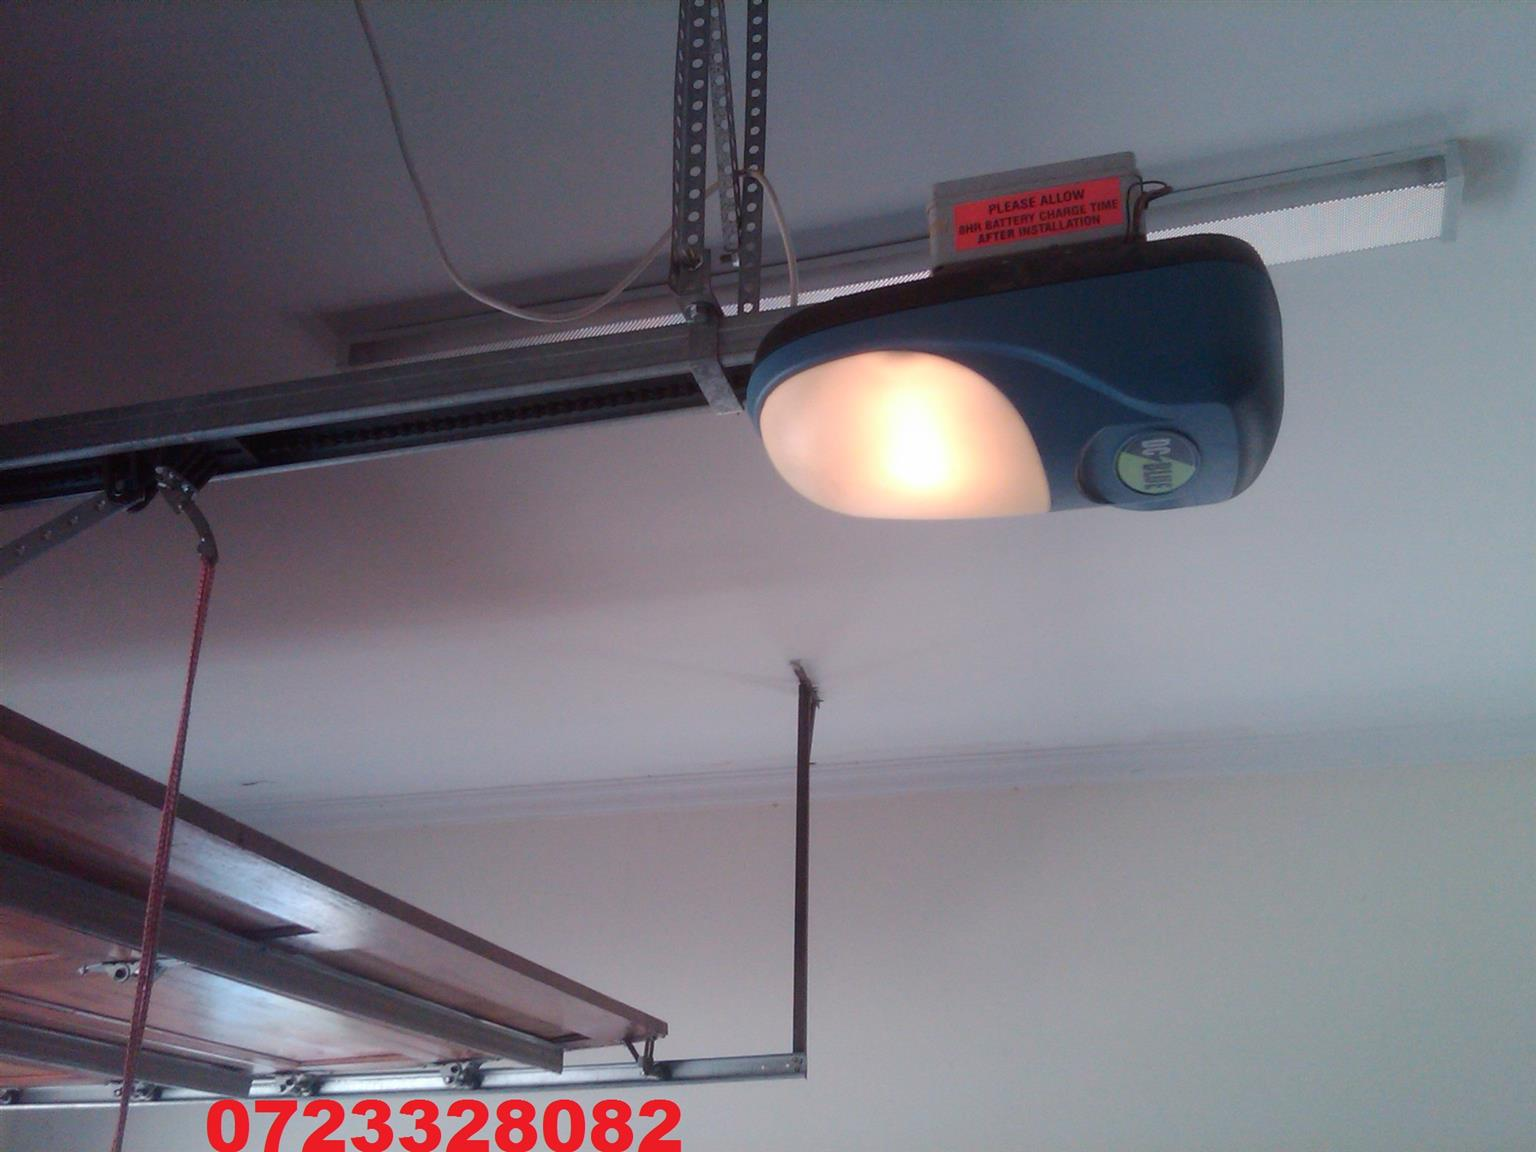 Best Electricians in Centurion no call out 0723328082